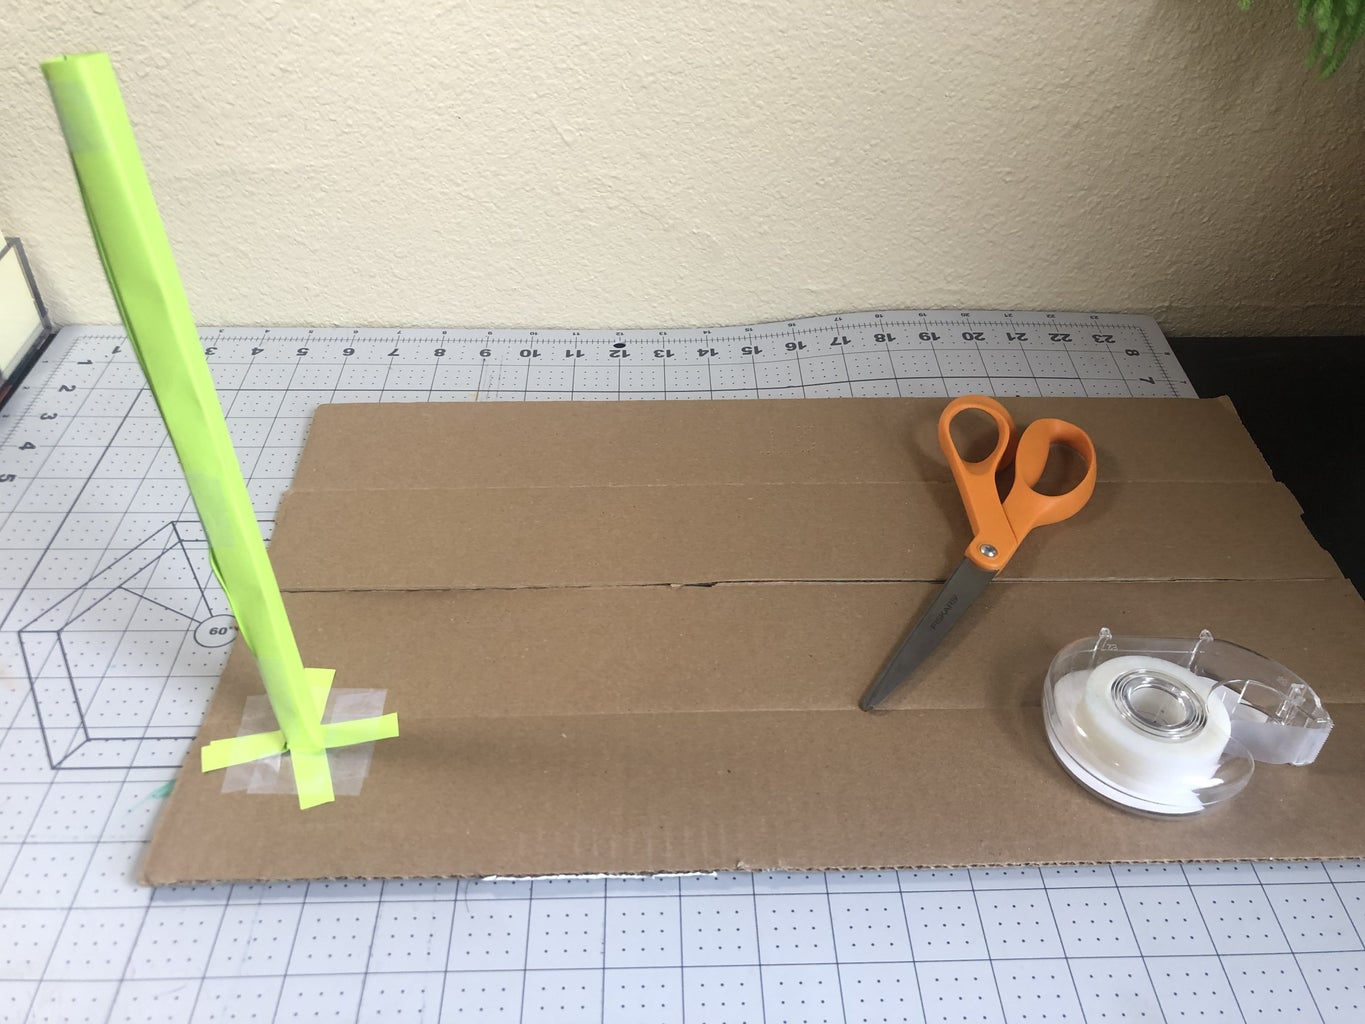 Tape Supports to a Cardboard Base